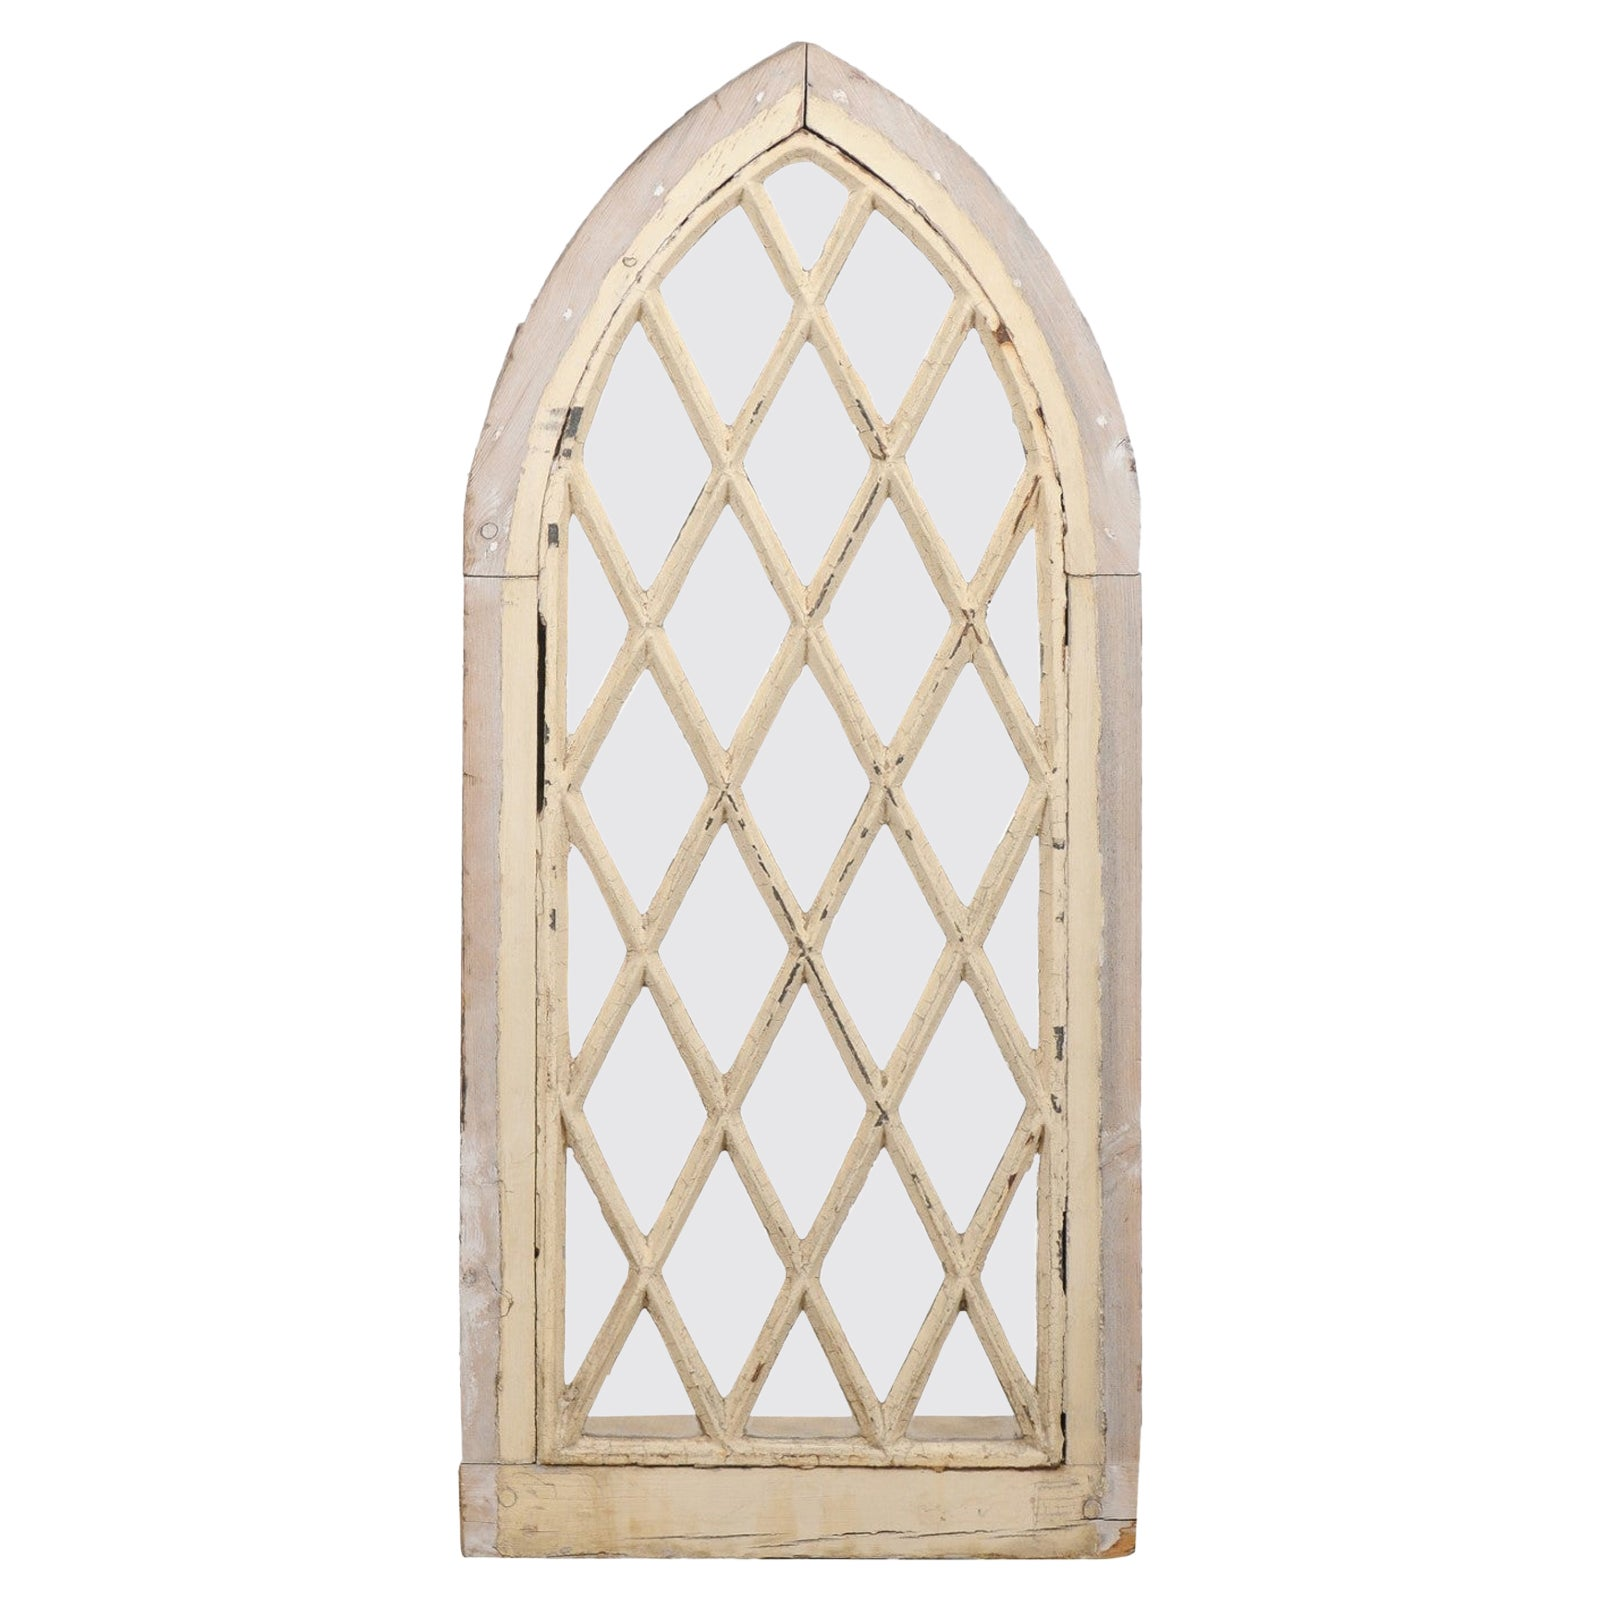 English 19th Century Gothic Revival Broken Arch Church Window with Mullions